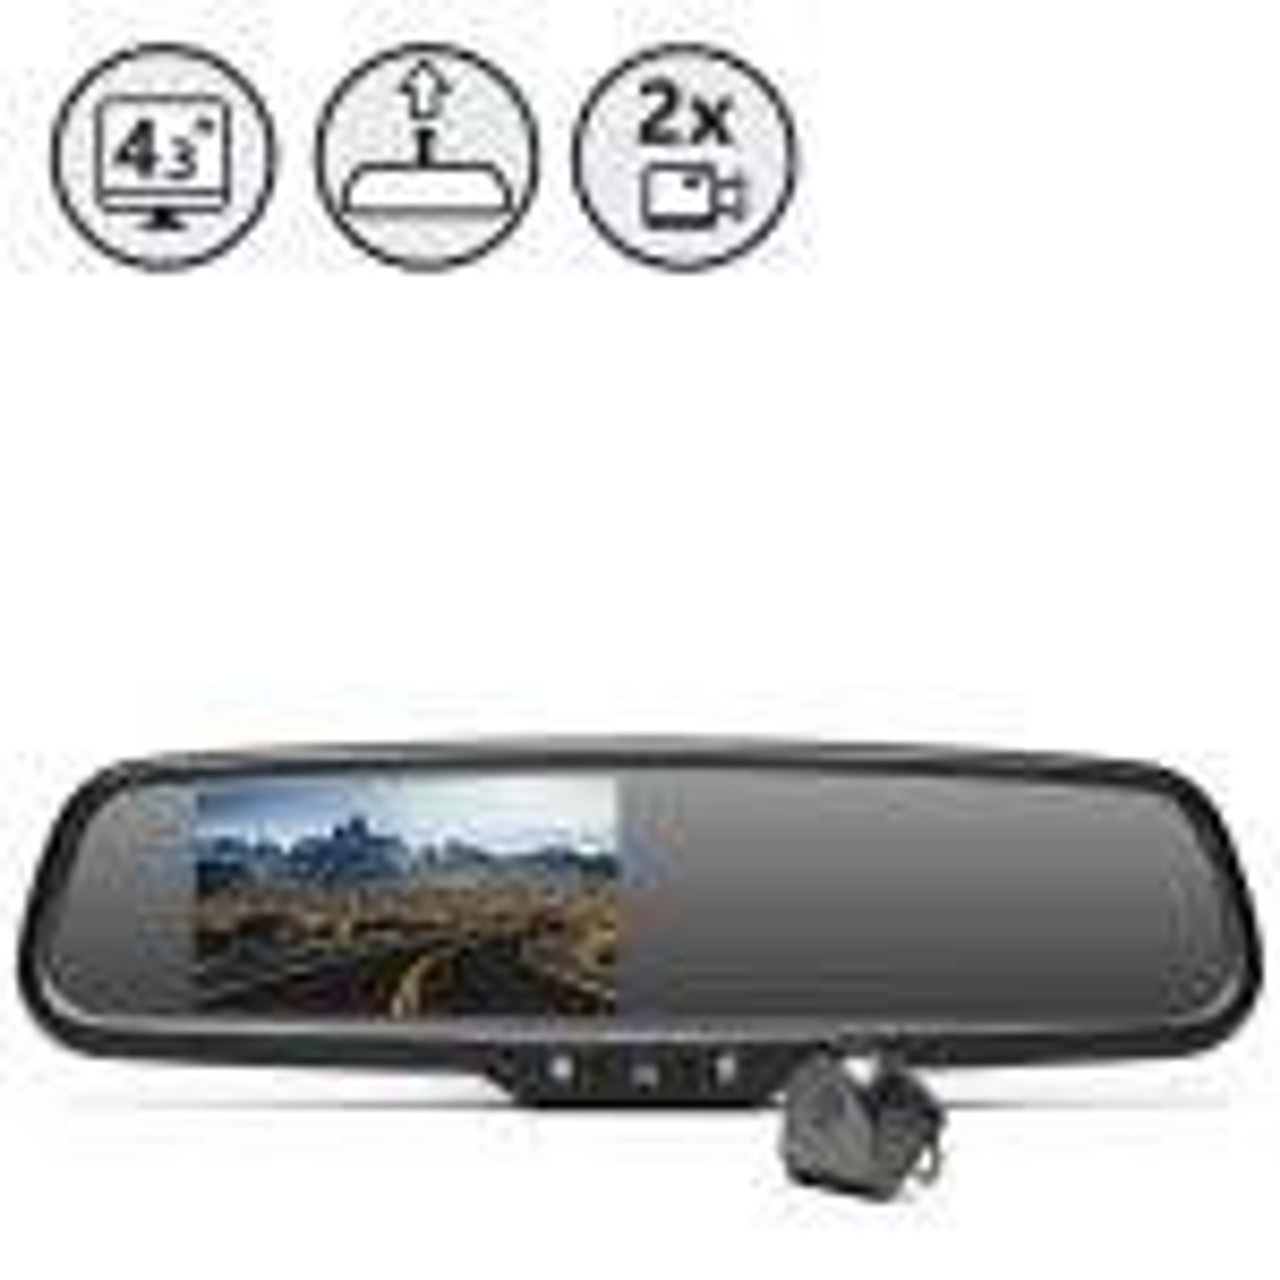 (Silverado 1500) Mirror Monitor with Hidden Dash Camera, Tailgate Camera, 33ft Cable